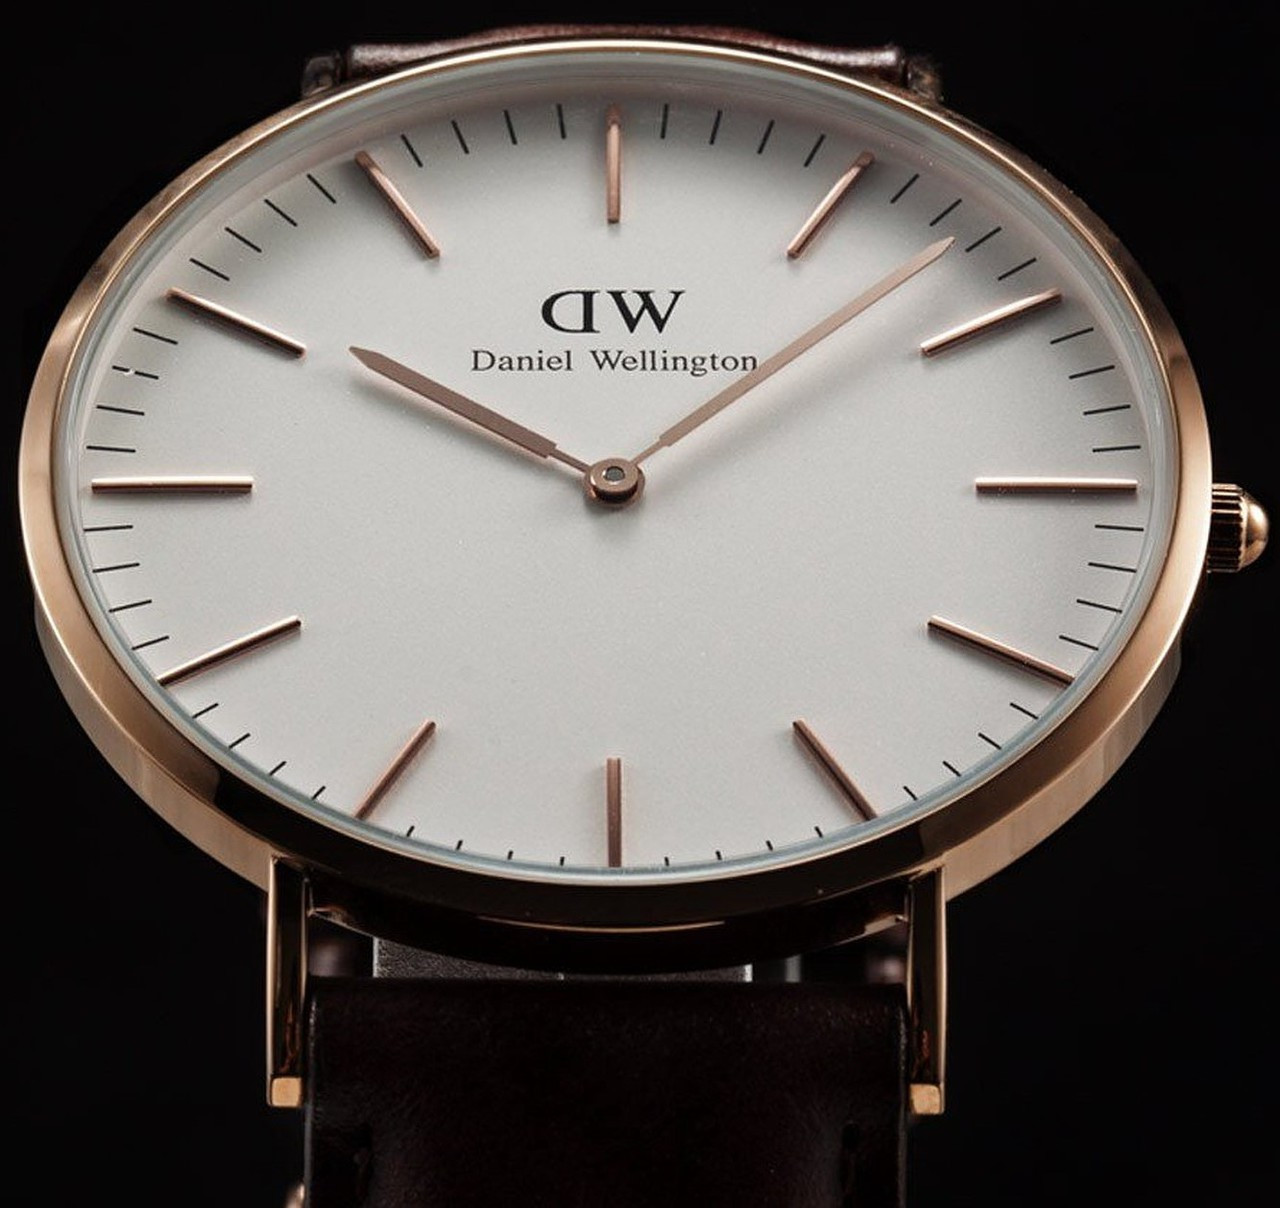 Watch Review - Daniel Wellington Men's St Mawes Watch 0106DW